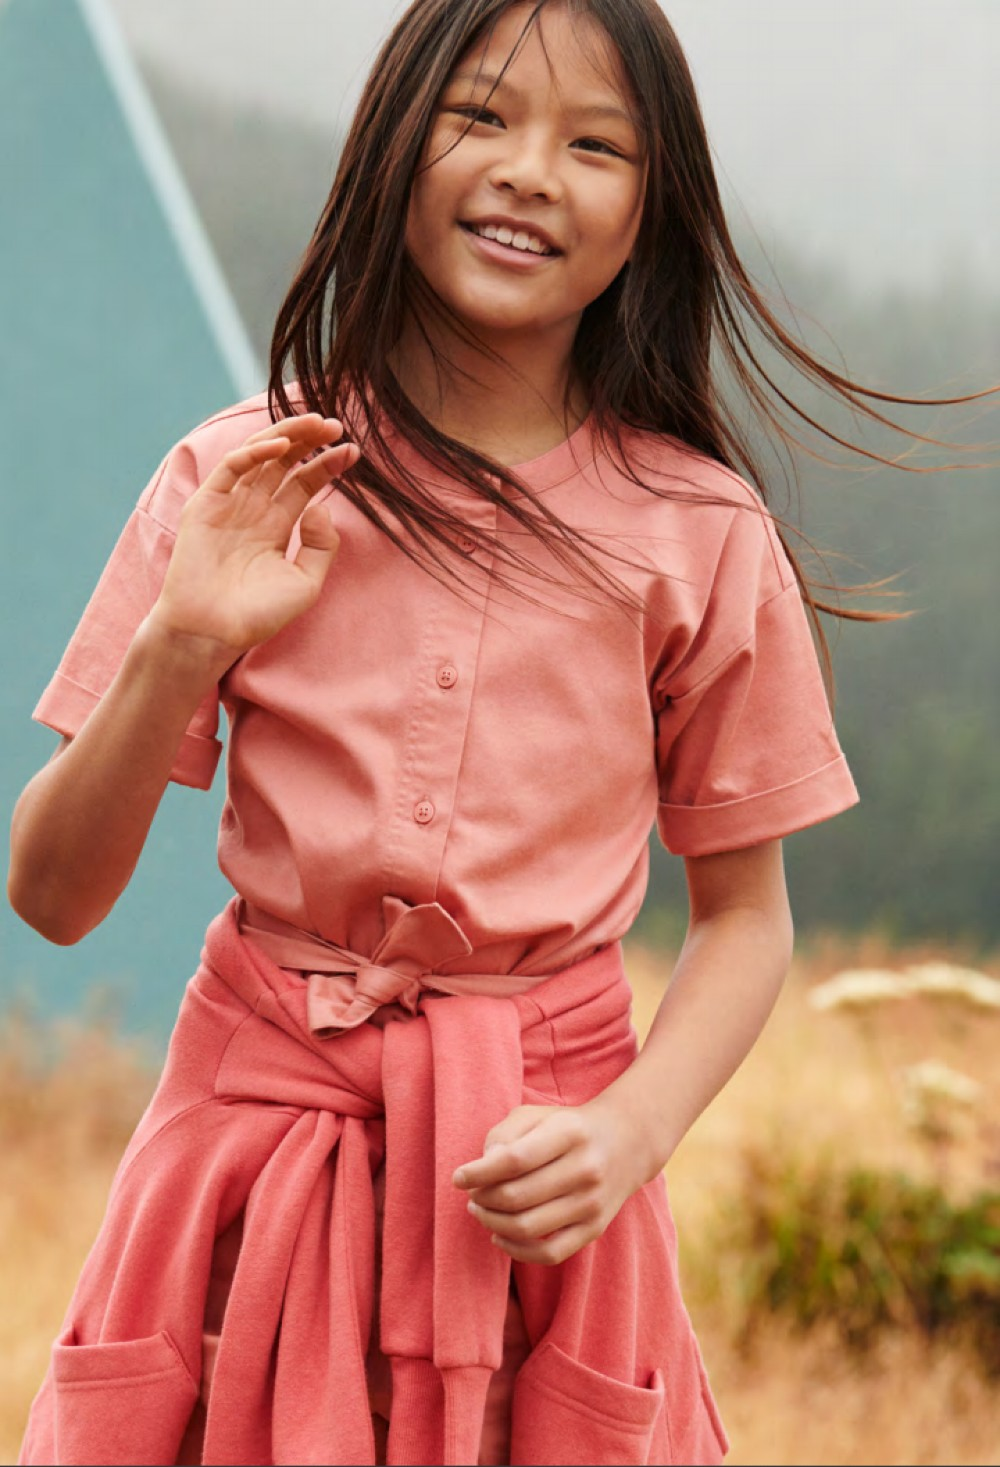 After one year on store shelves, Walmart has expanded the private label men's and women's apparel brand to include children's clothing.